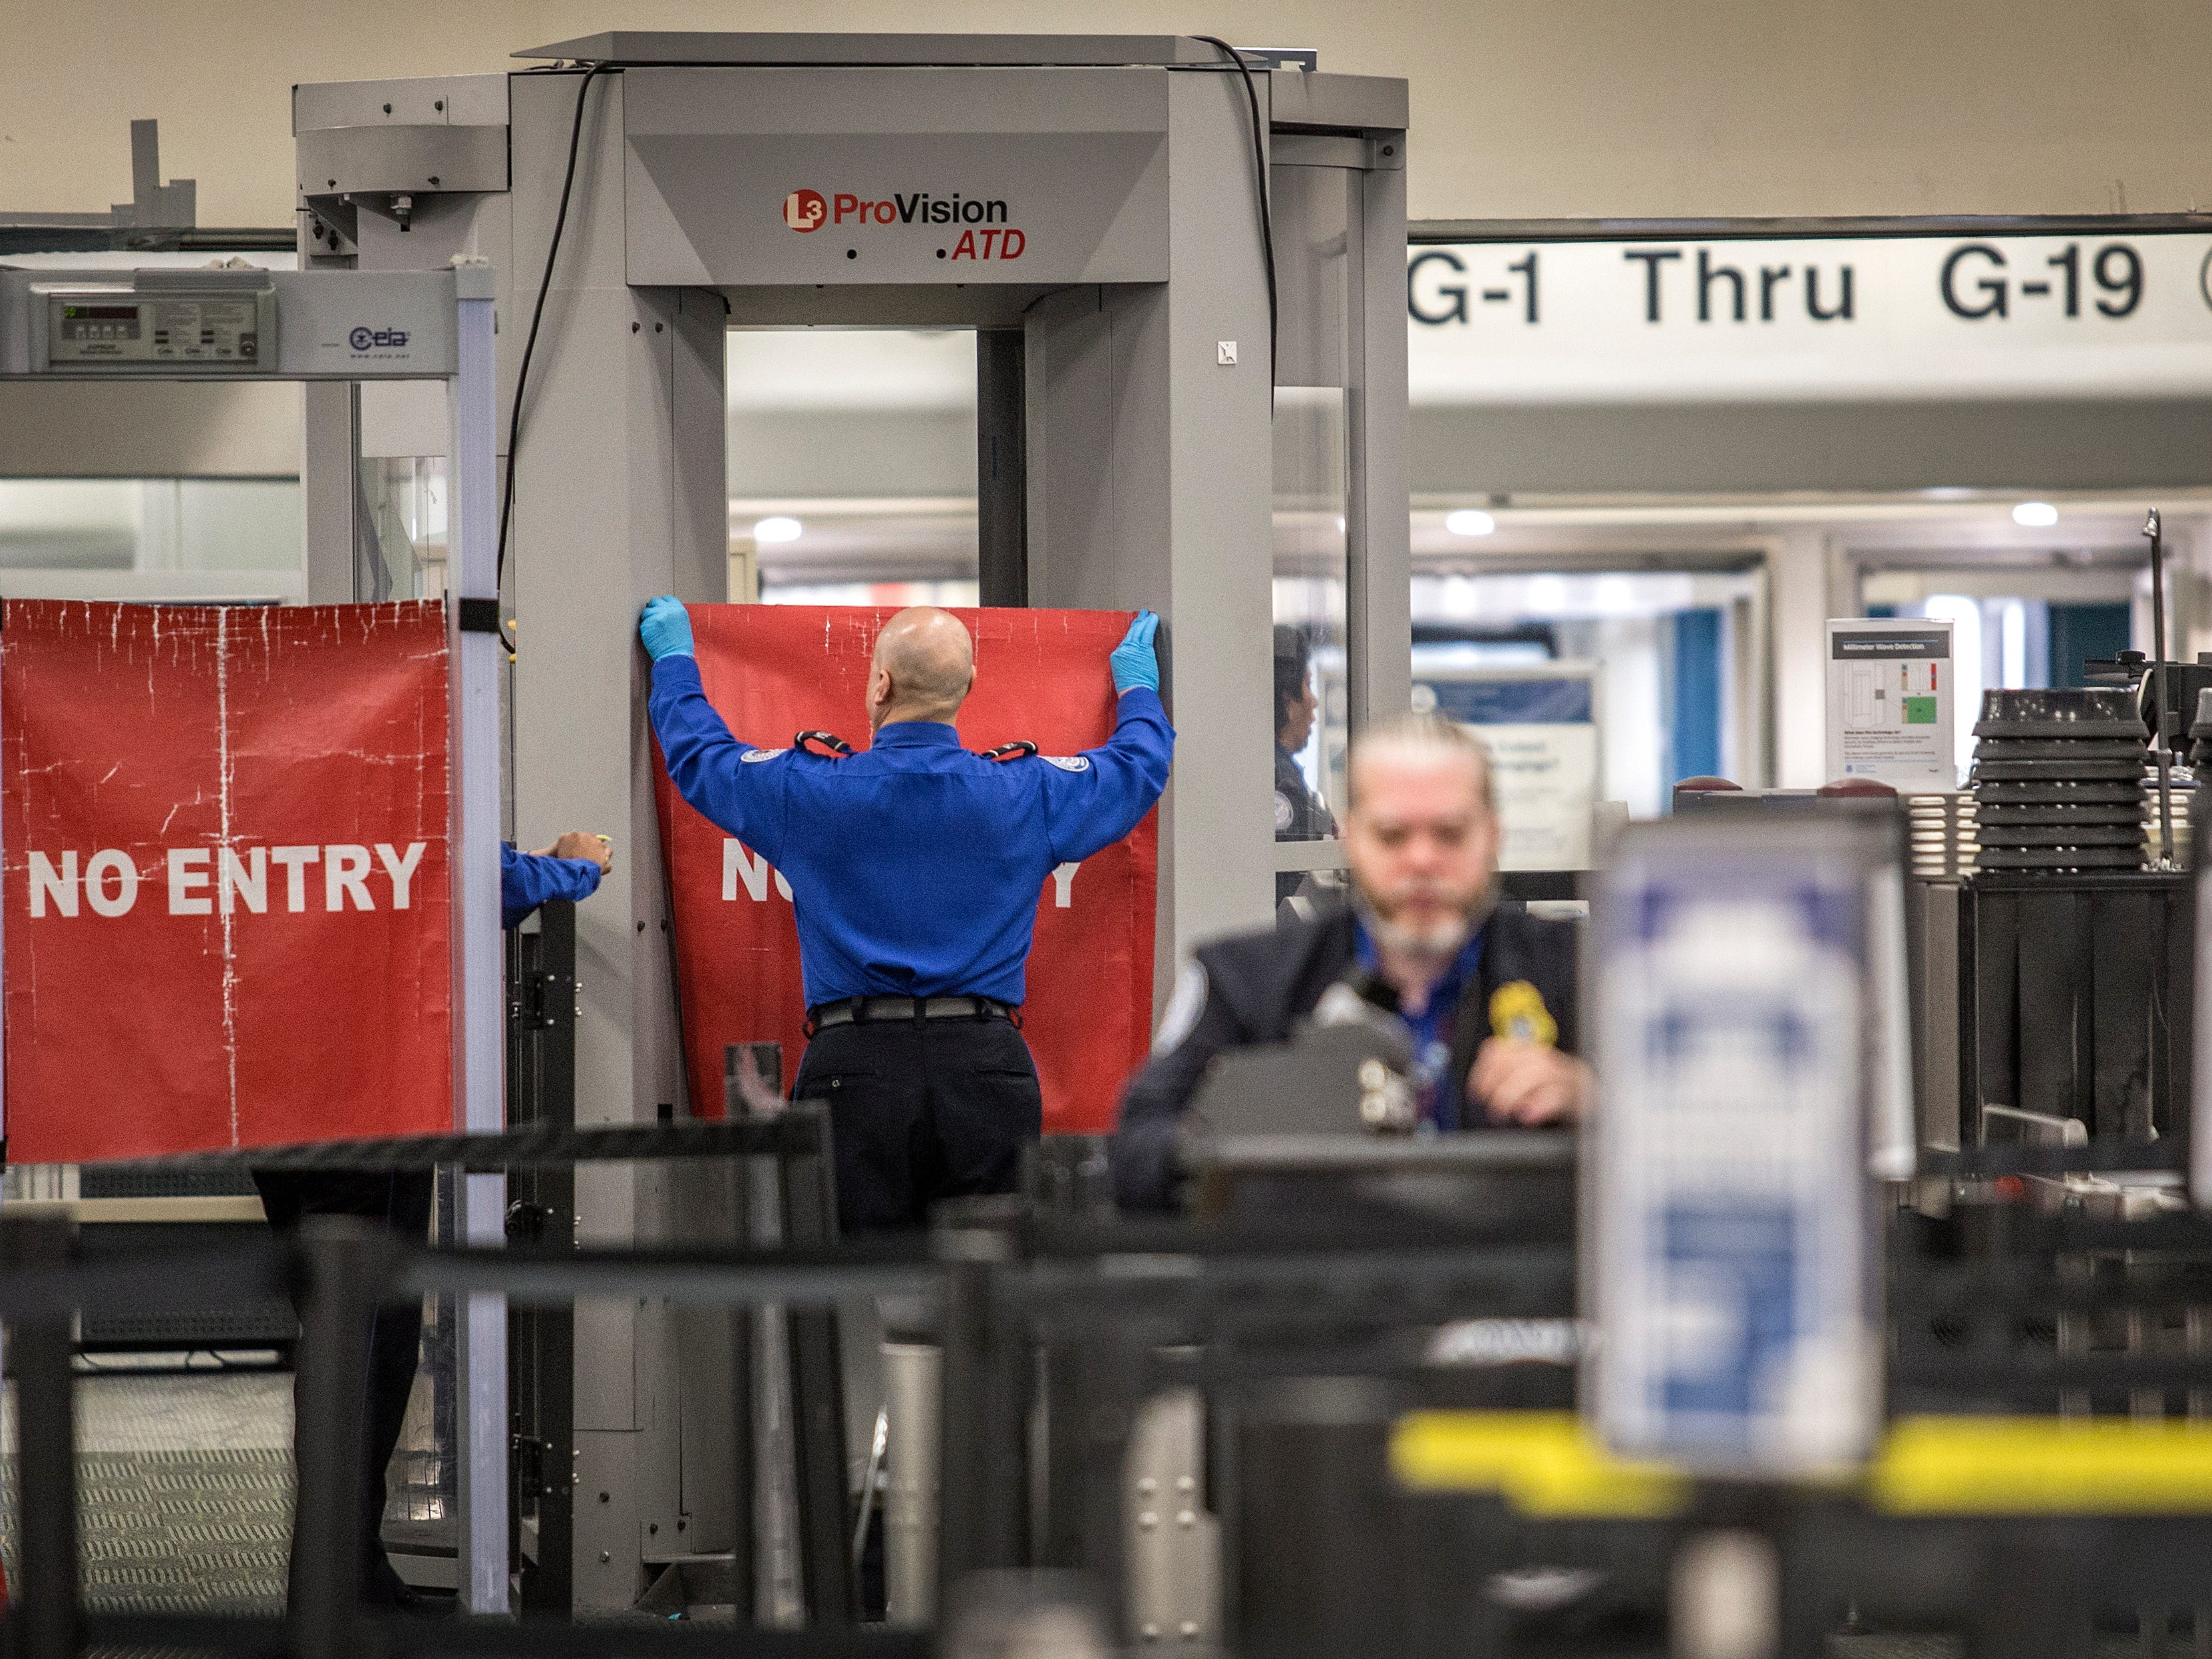 epaselect epa07278513 A TSA officer closes the entrance of the Miami International Airport's Terminal G, during the ongoing the government shutdown, in Miami, Florida, USA, 12 January 2019. The current partial shutdown of the US federal government has become the longest in US history, on 12 January, surpassing the previous 21-day shutdown of 1995-1996. Over 800,000 federal employees are impacted by the shutdown, with around 400,000 furloughed and being paid later and the rest deemed 'essential', who must work without pay, though retroactive pay is expected, with 11 January marking the first missed paycheck.  EPA-EFE/CRISTOBAL HERRERA ORG XMIT: CHU02